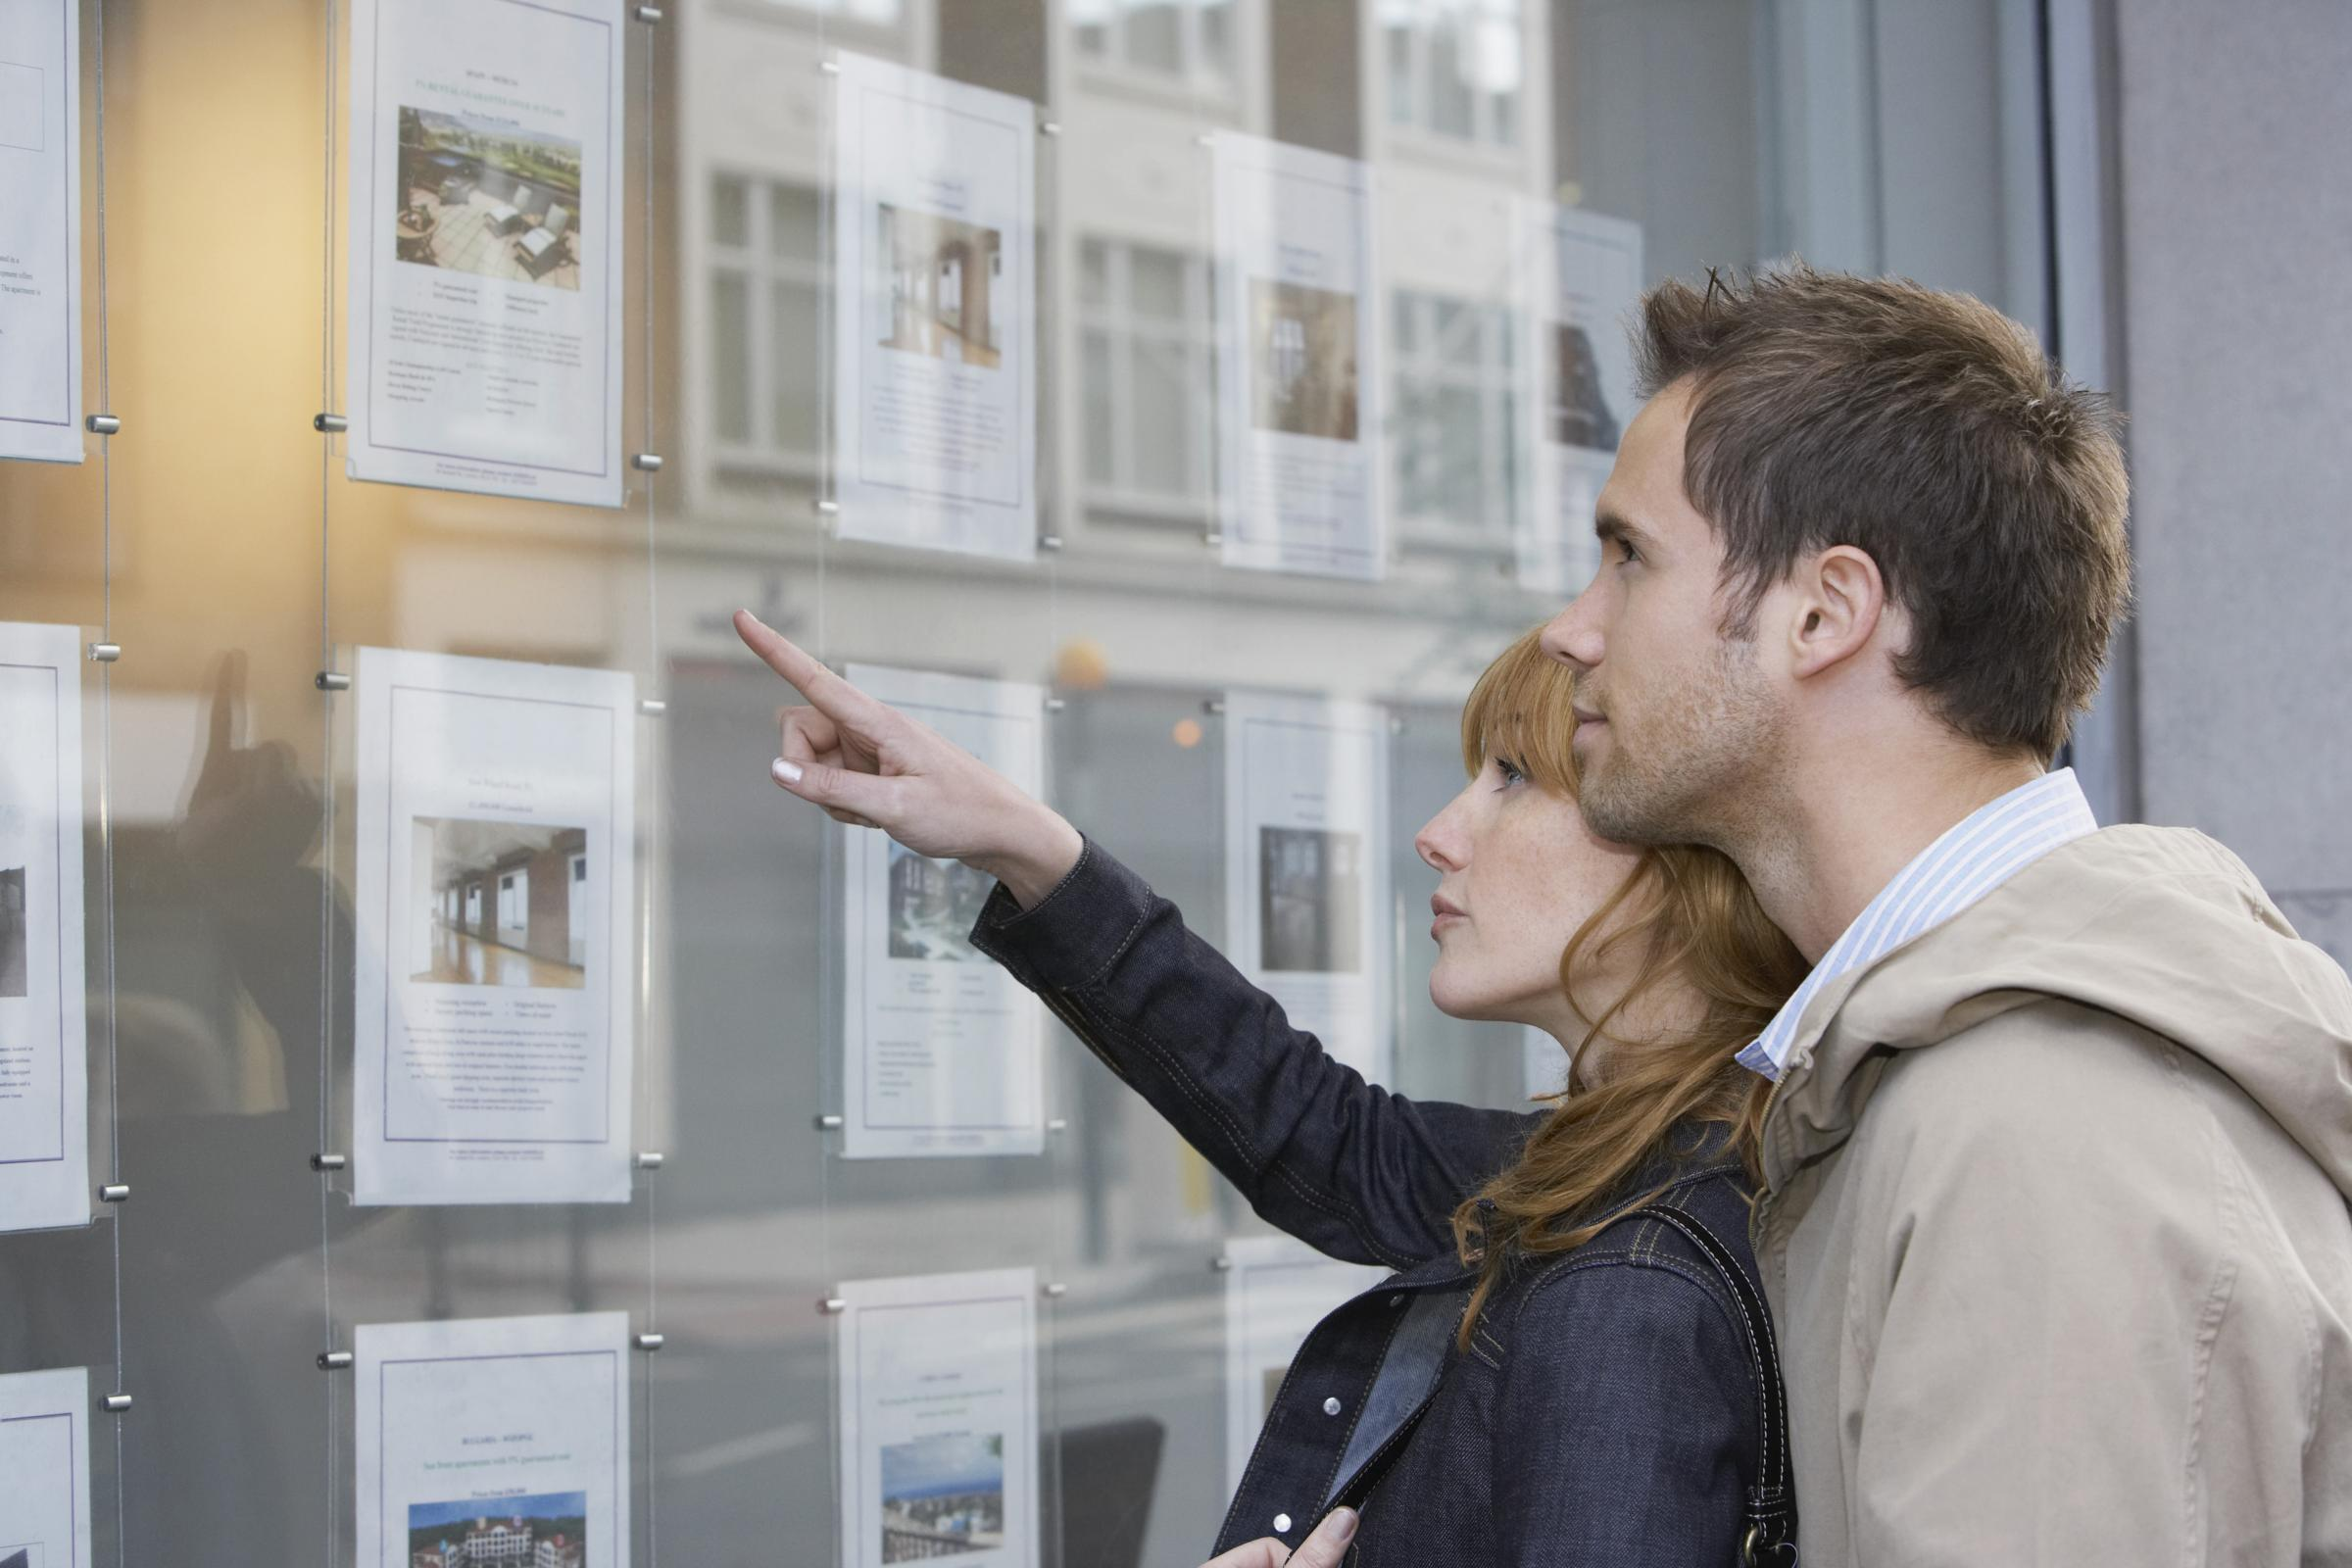 BUYING: First-time buyers on the rise